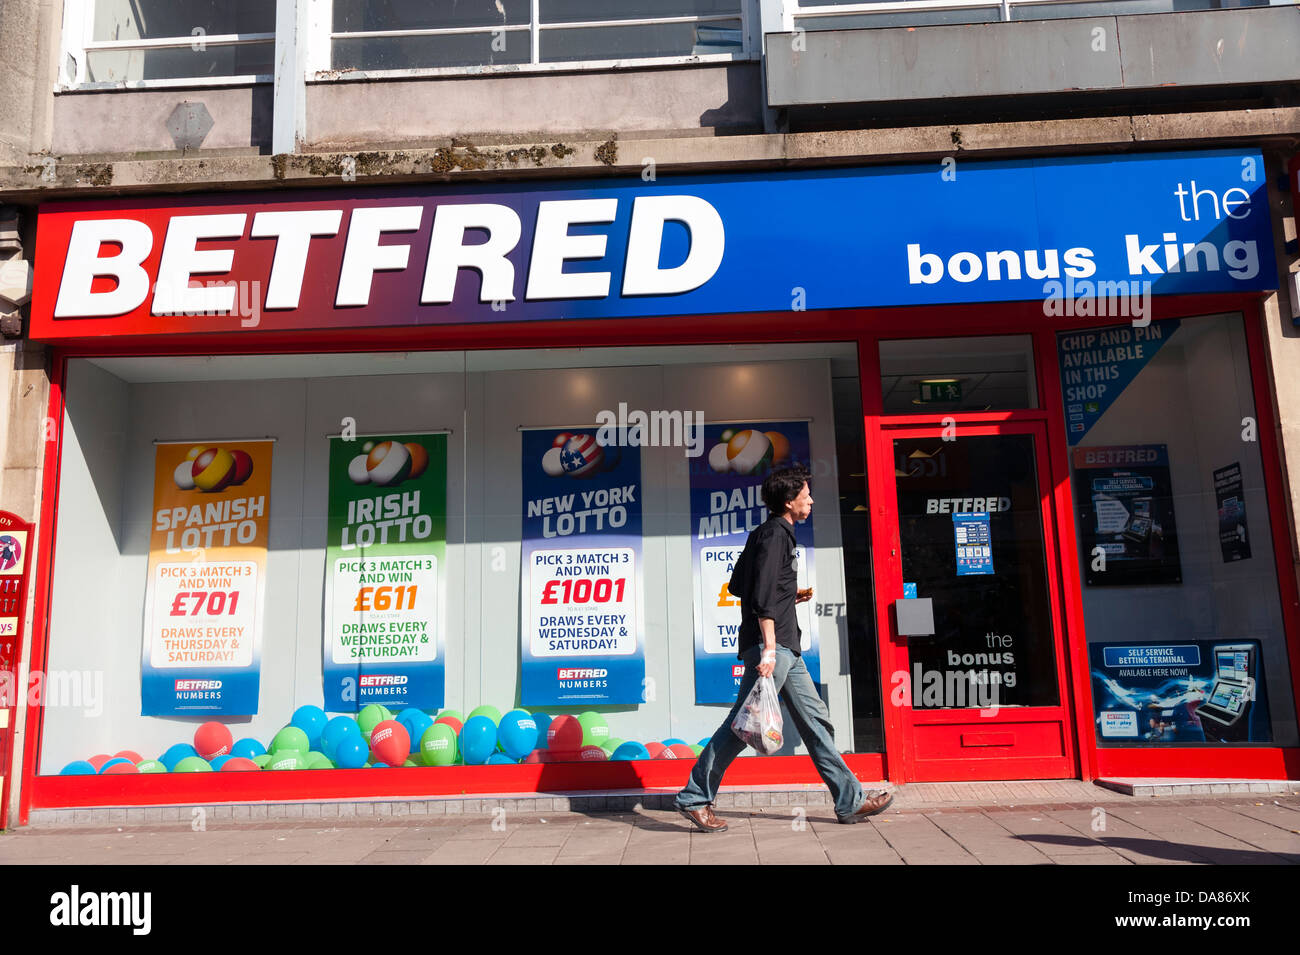 Bet Fred bookmakers,UK. - Stock Image